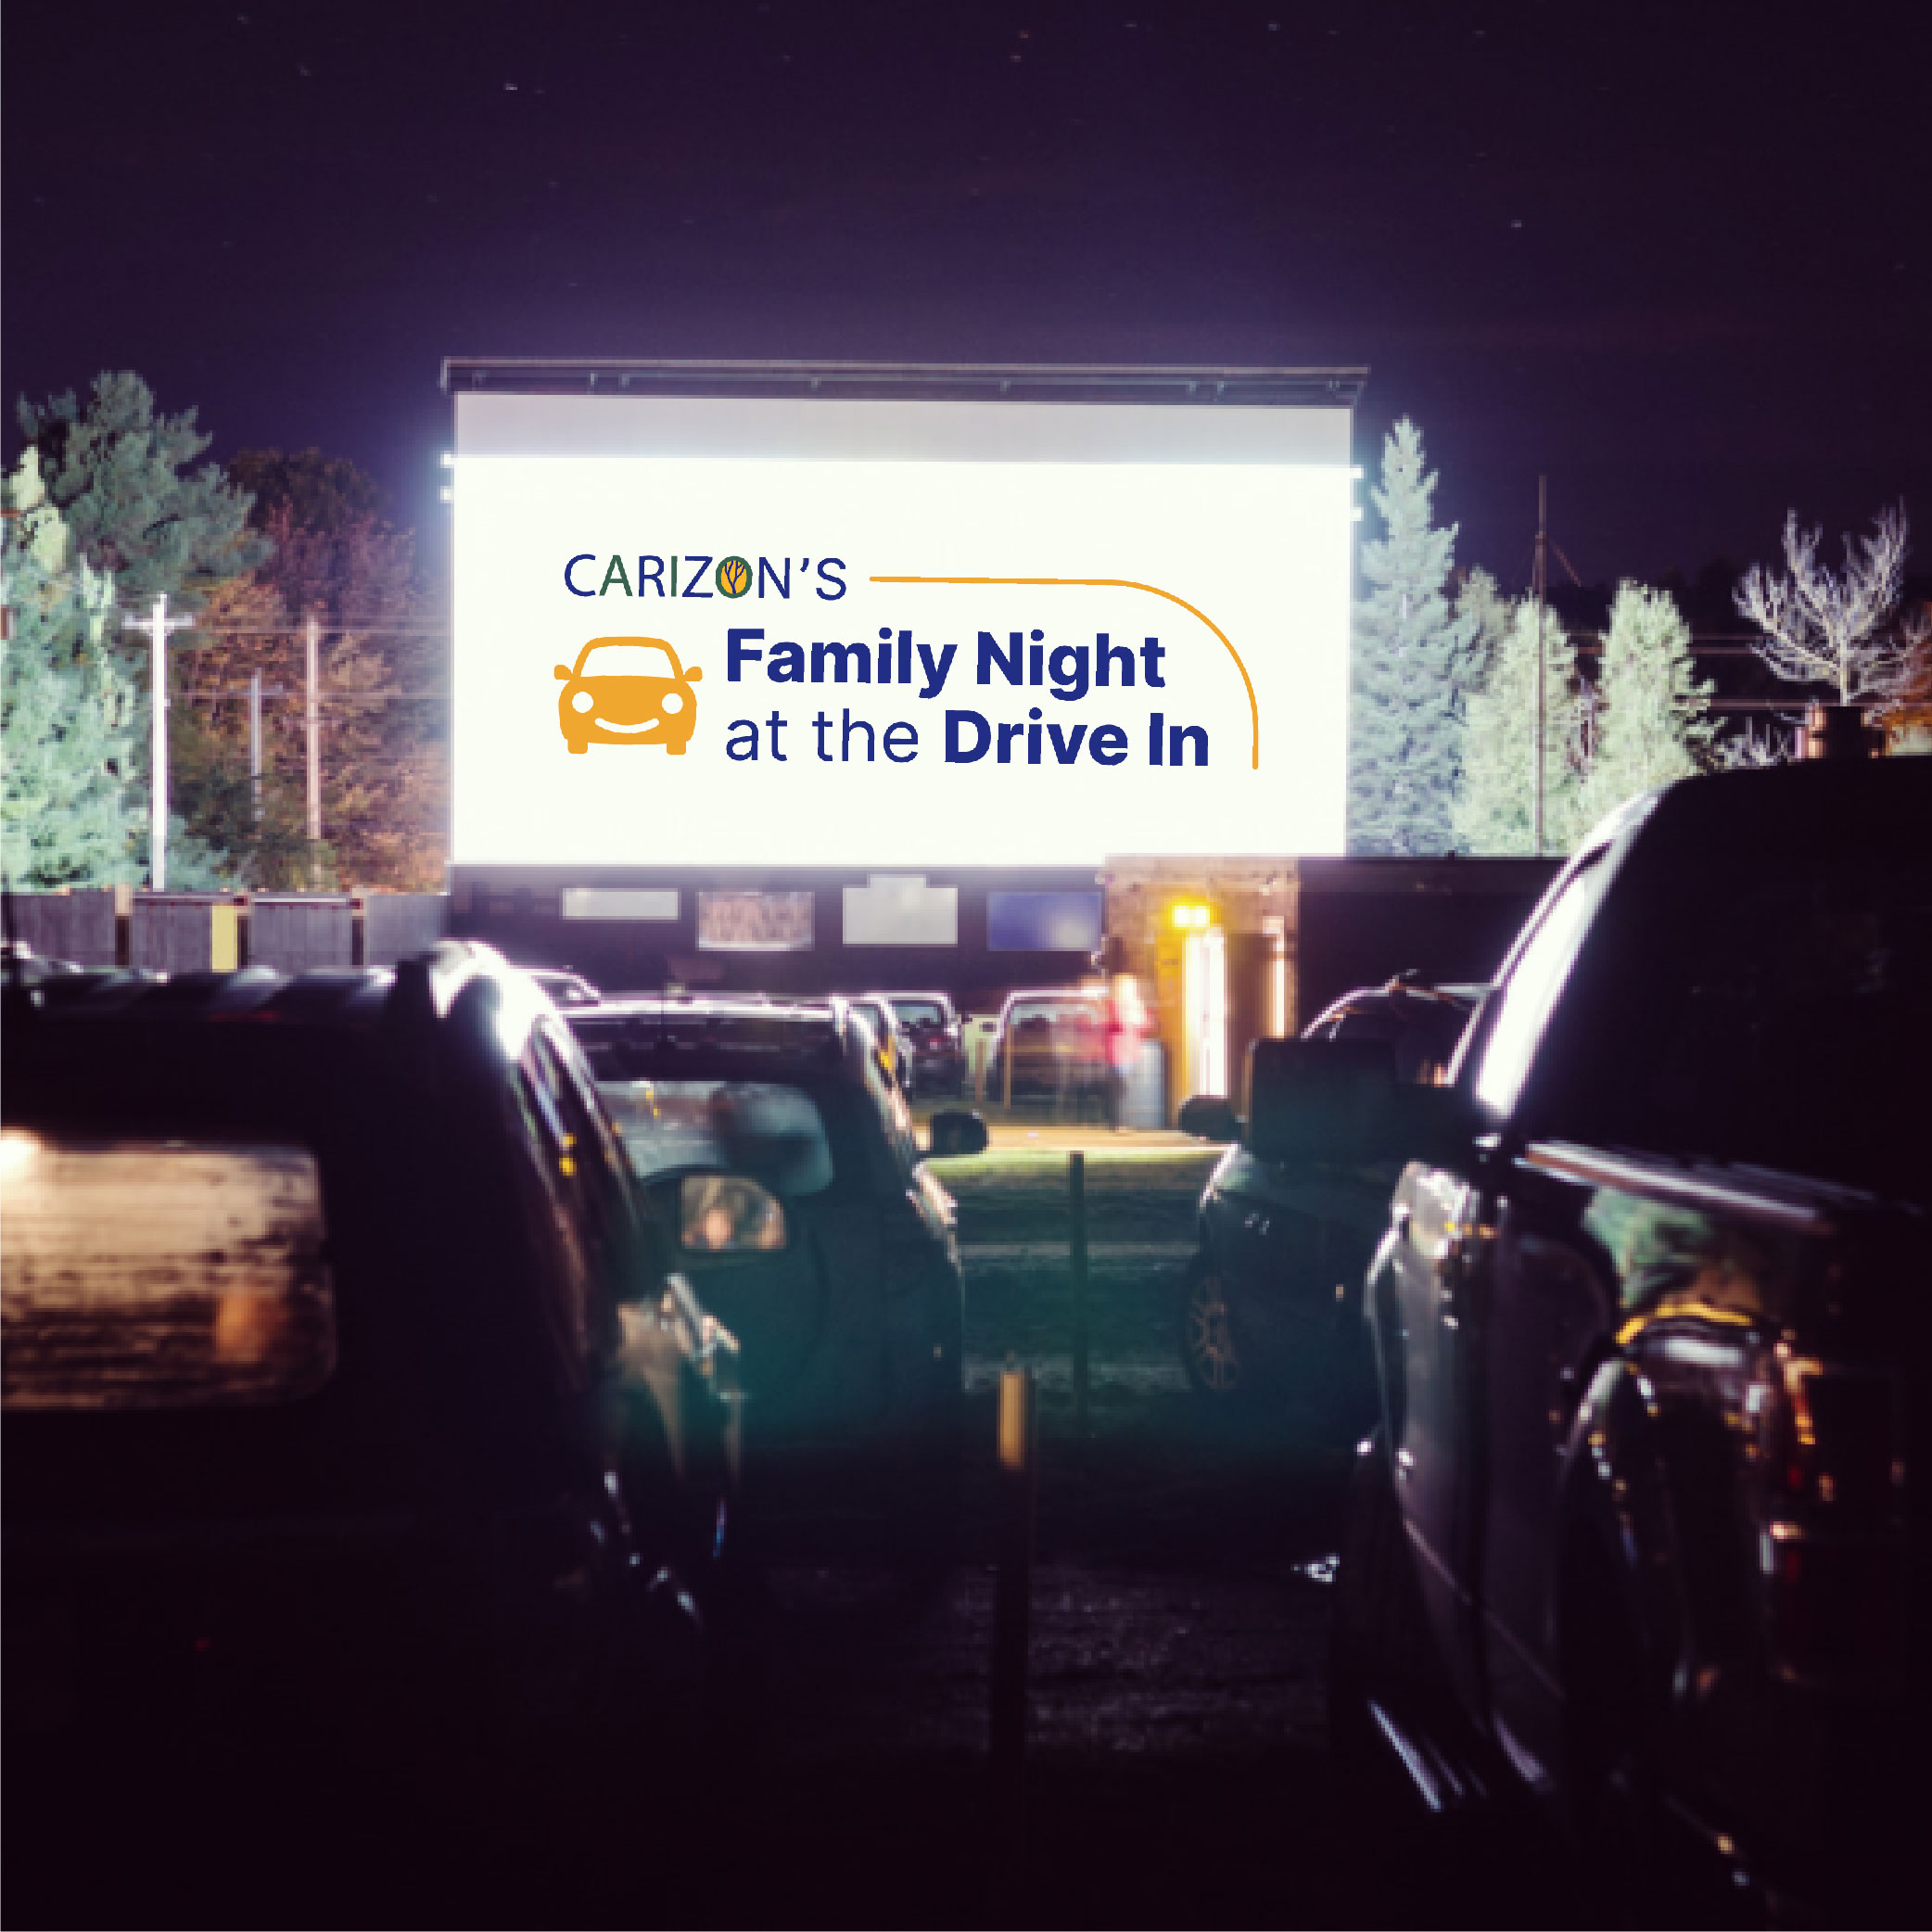 Carizon's Family Night at the Drive In